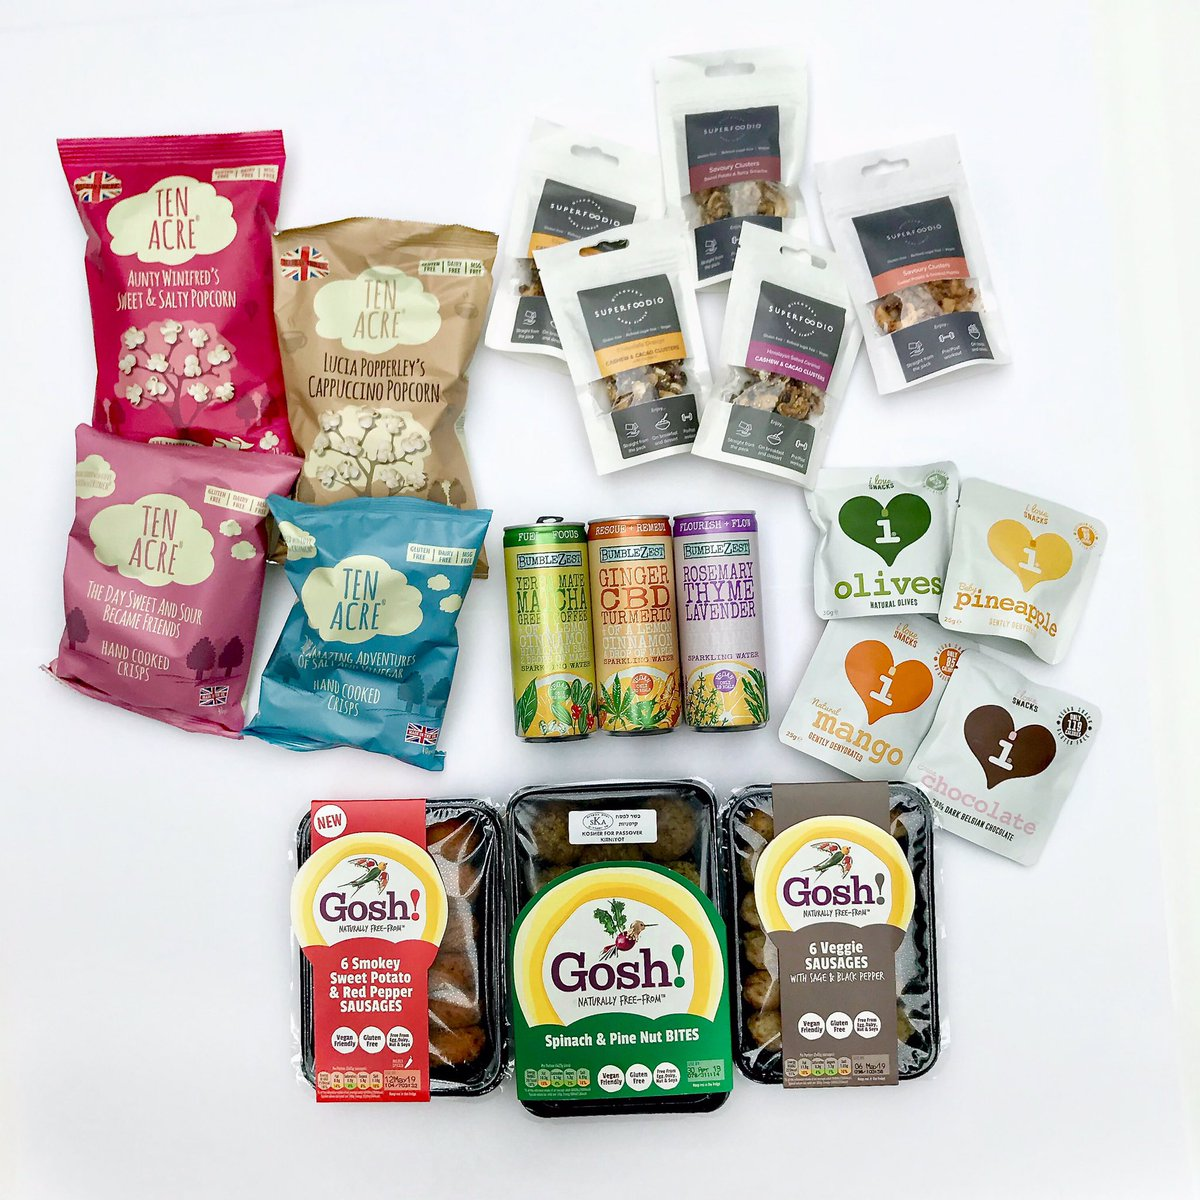 GIVEAWAY TIME!  The weather is warming up and that means it's the perfect time for a picnic with some delicious goodies from @BumbleZest @ilovesnacks2 @superfoodio @goshfreefrom @10Acre   Head over to our Instagram page to enter!